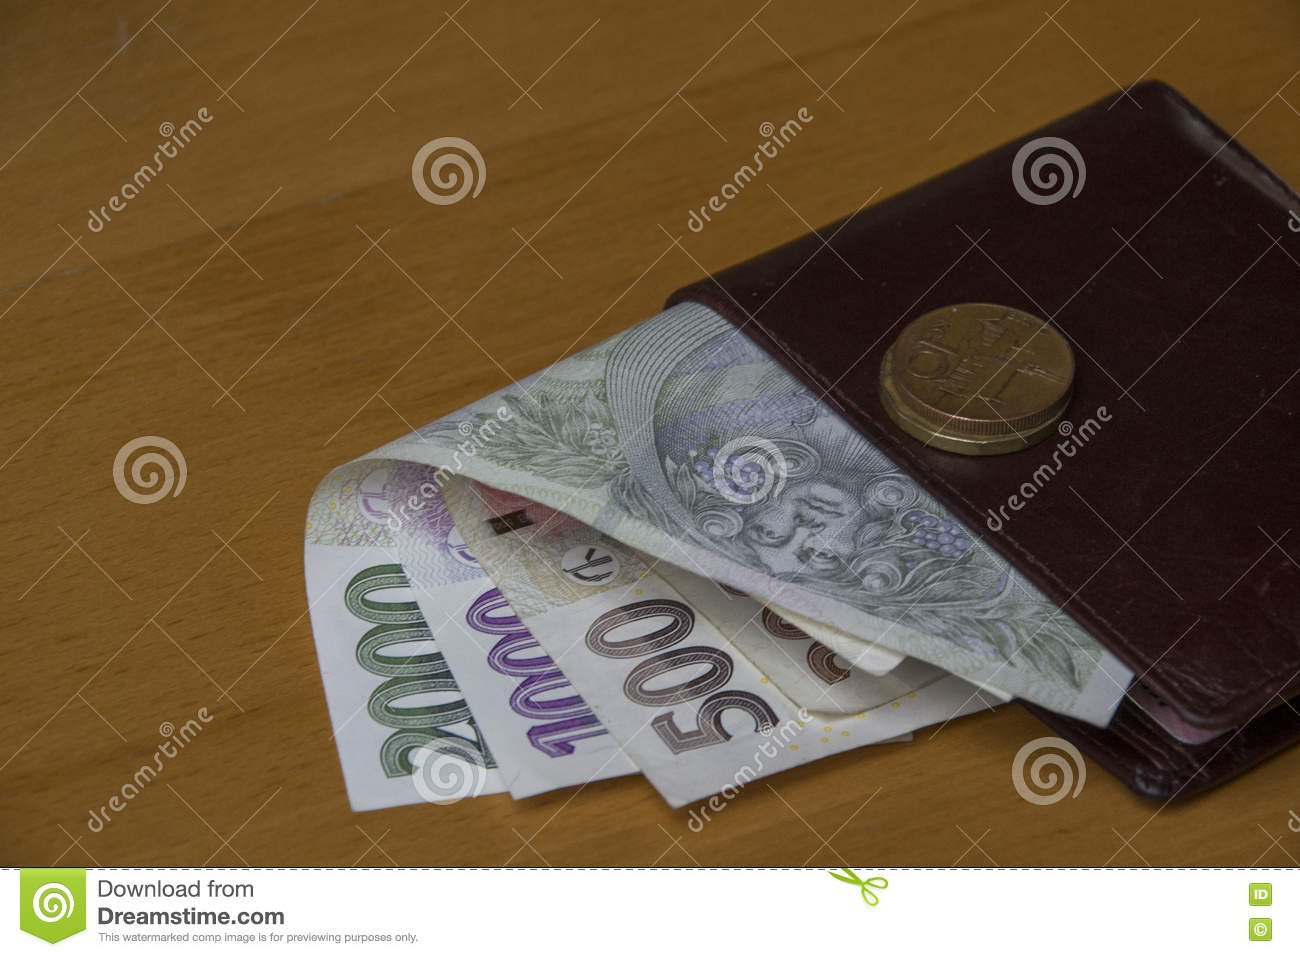 czech money on wallet stock image image of gathered 80789993